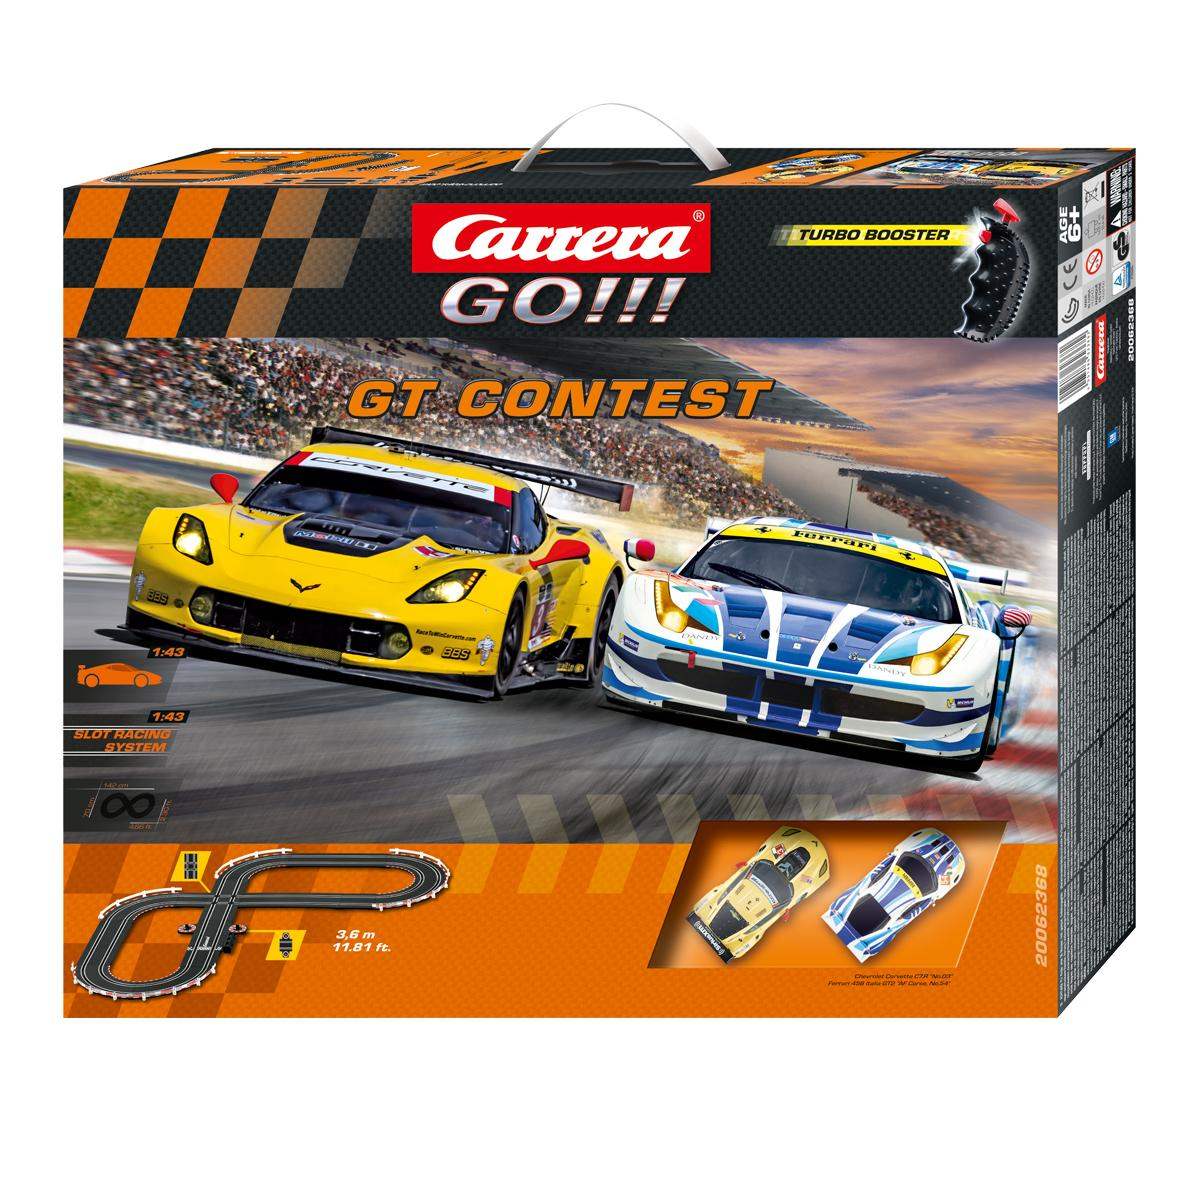 Carrera Analog Slot Car Reviews